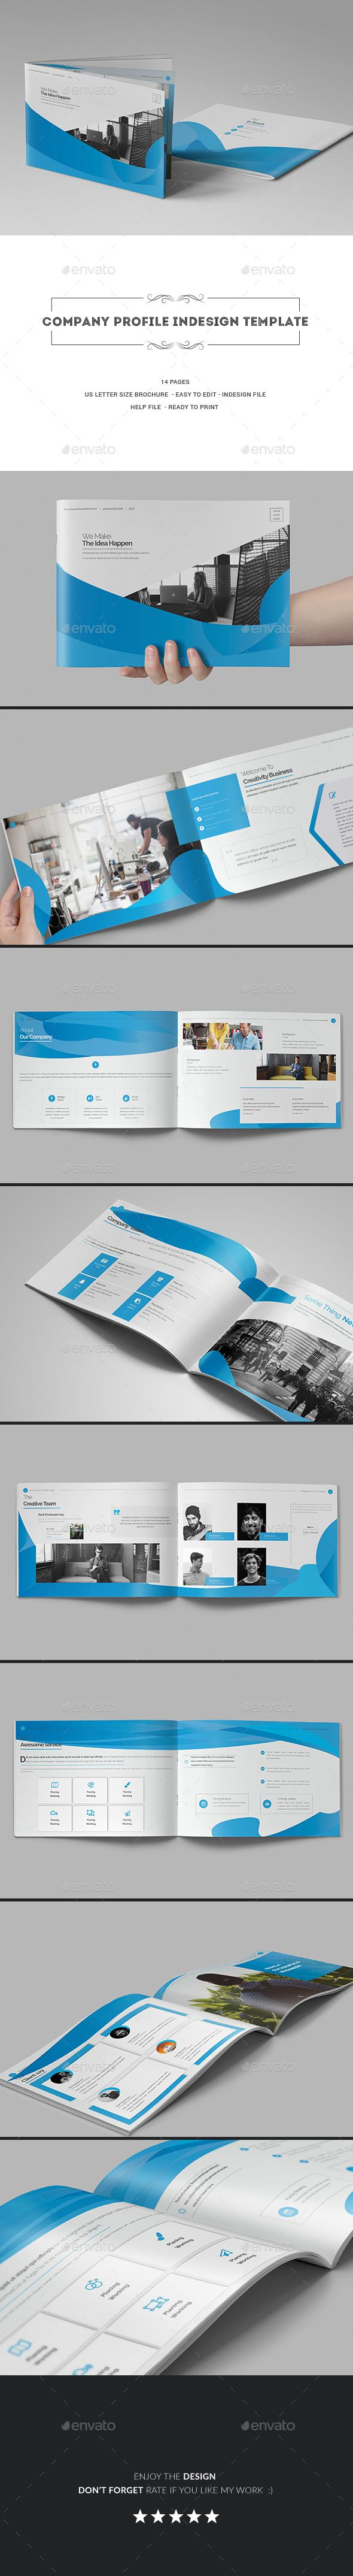 Company Profile InDesign Template - #Corporate #Brochures Download here: https://graphicriver.net/item/company-profile-indesign-template/20009748?ref=alena994